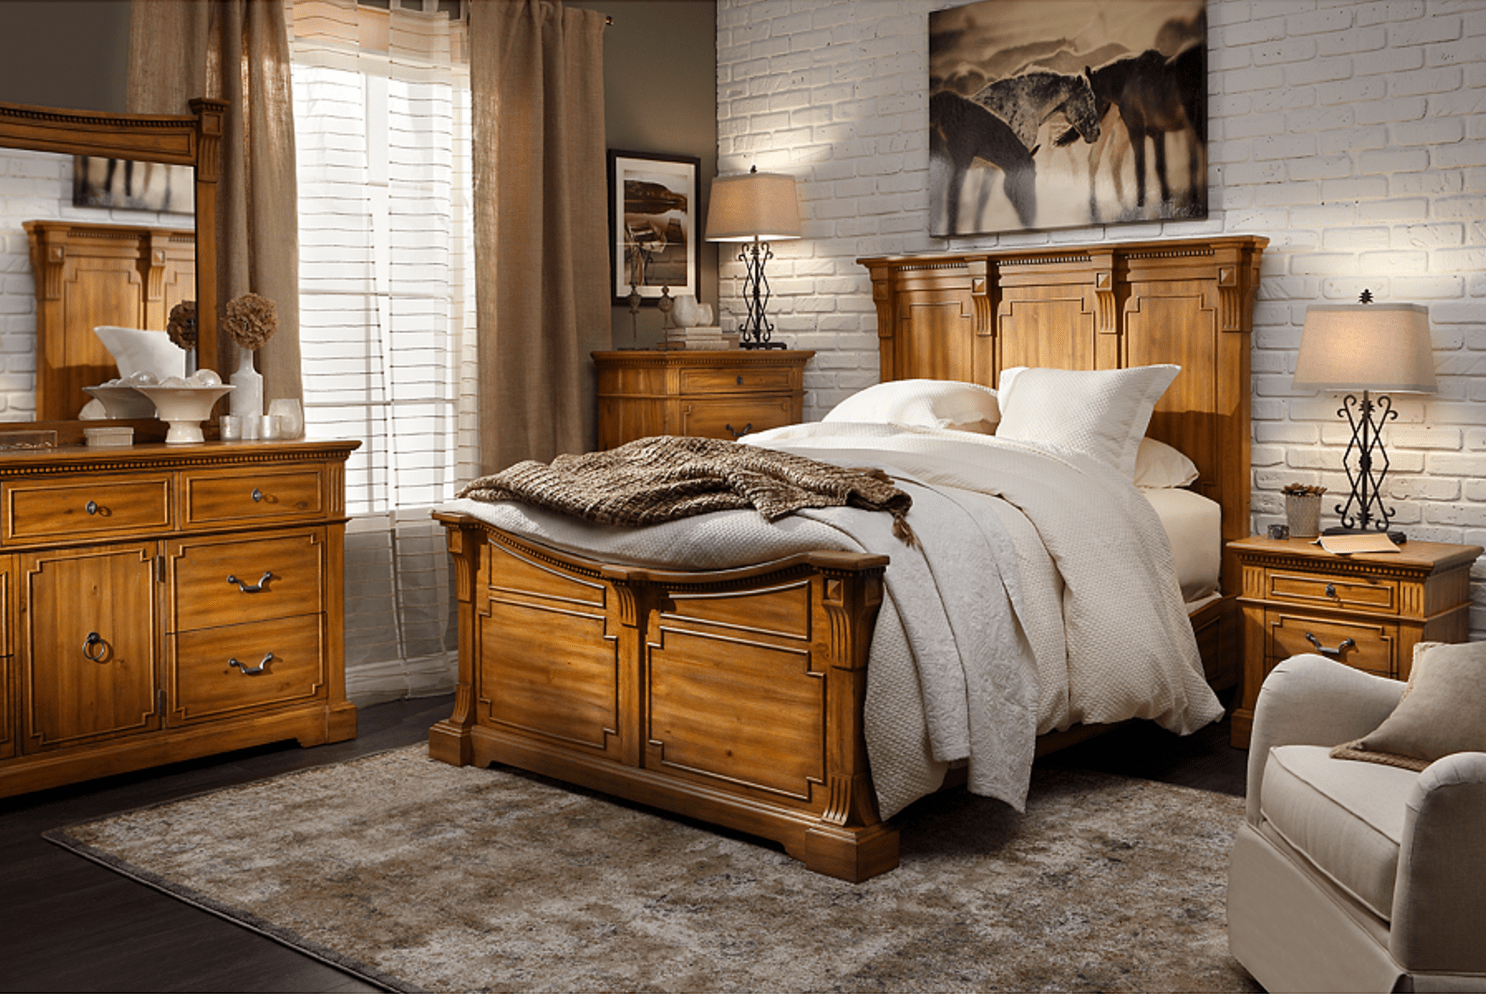 Bedroom Expressions Clarksville Indiana IN